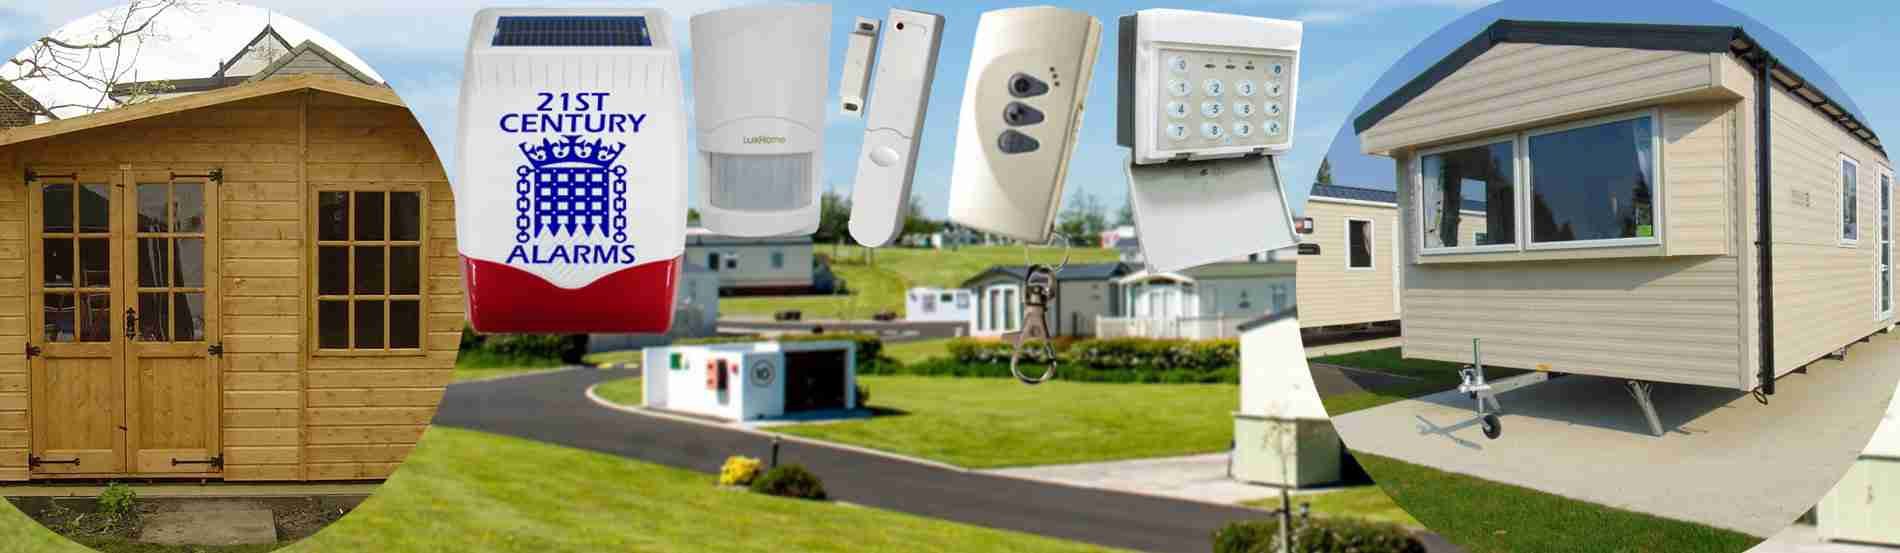 2 X WIRELESS MOTION SENSOR ALARM WITH SECURITY KEYPAD HOME GARAGE SHED CARAVAN